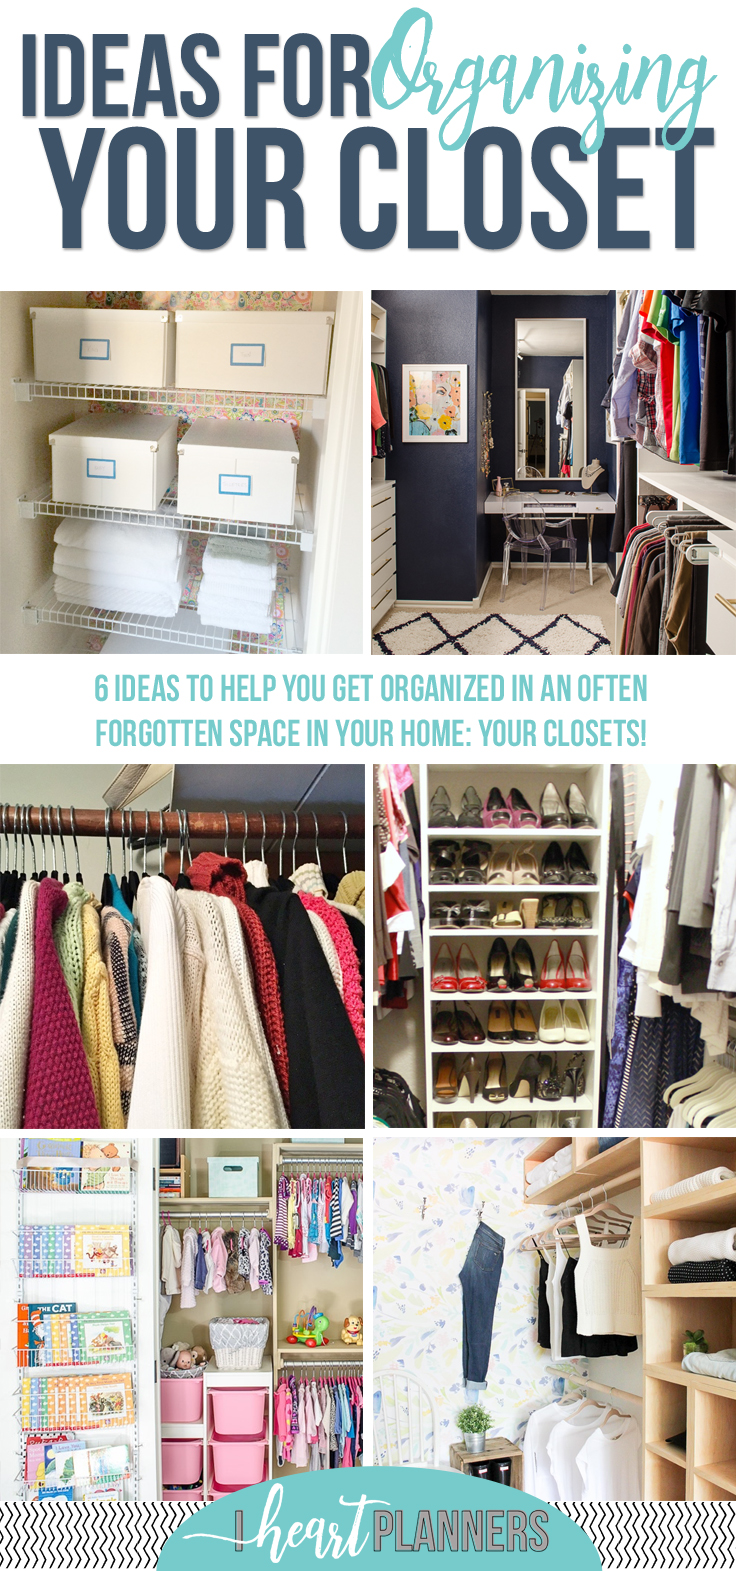 How to organize your closet i heart planners for How to organize your closets